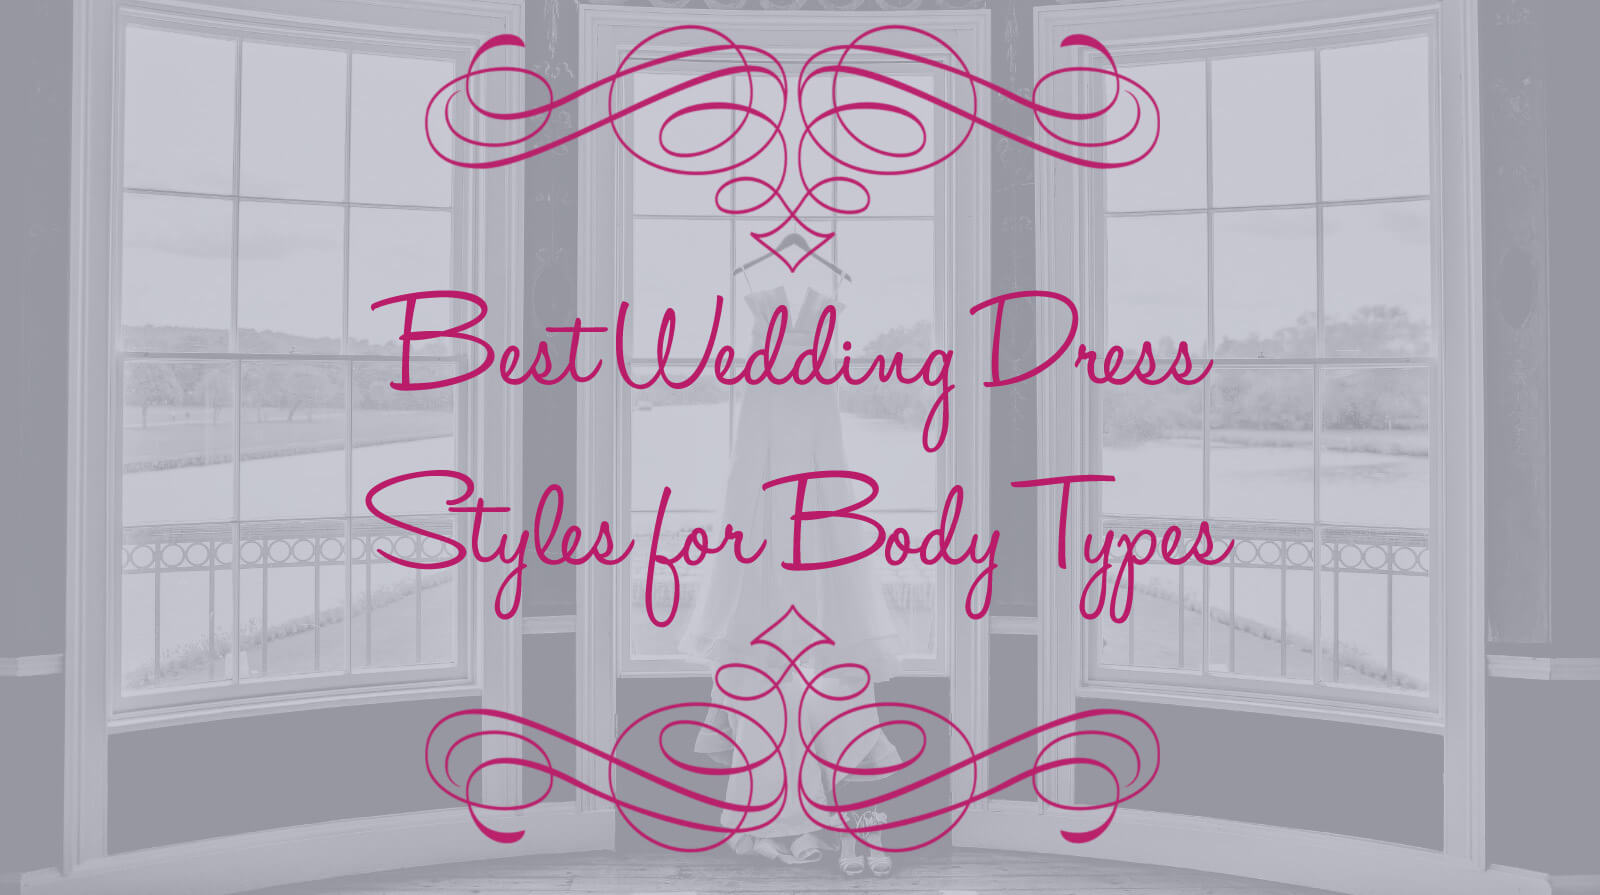 The Best Wedding Dress Styles for Different Body Types